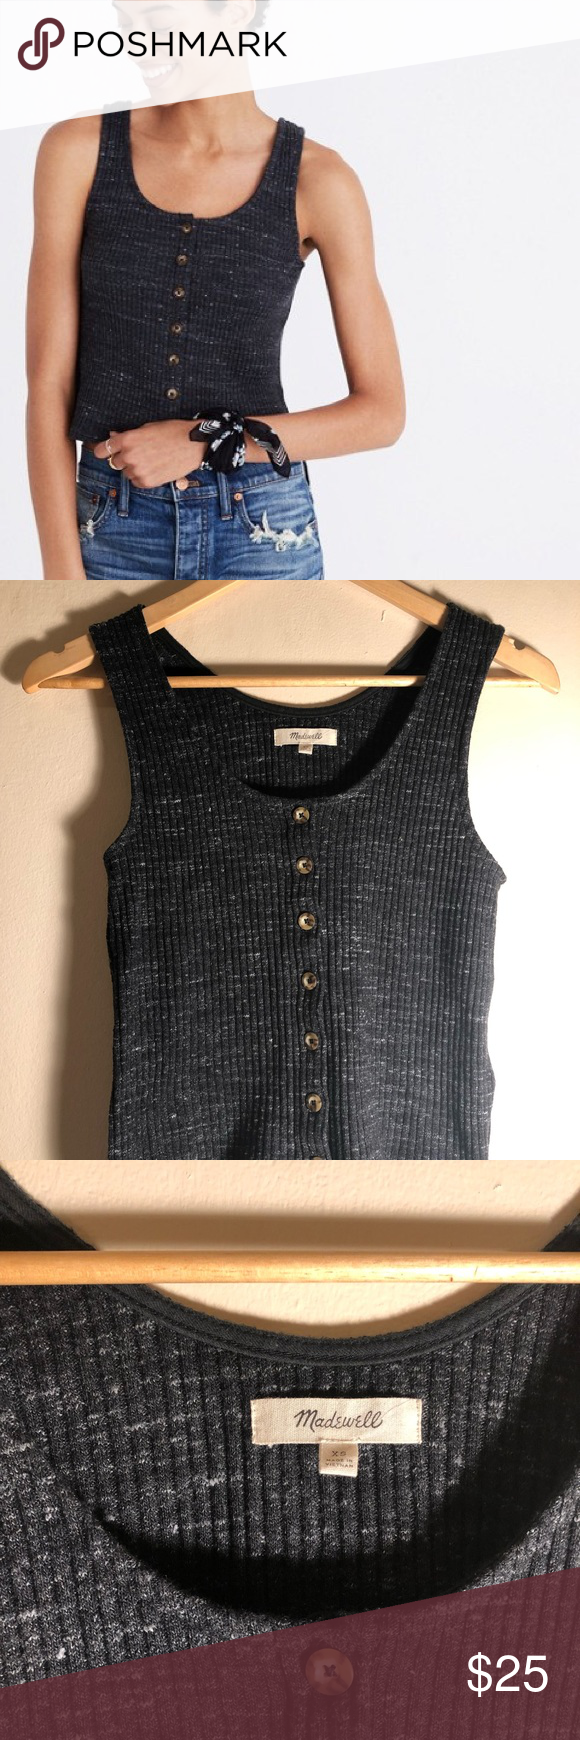 b8f69f06061cfd Madewell Ribbed Button Front Sweater Tank Top- XS Dark grey charcoal. Super  cute and so soft! Barely cropped fit. Never worn